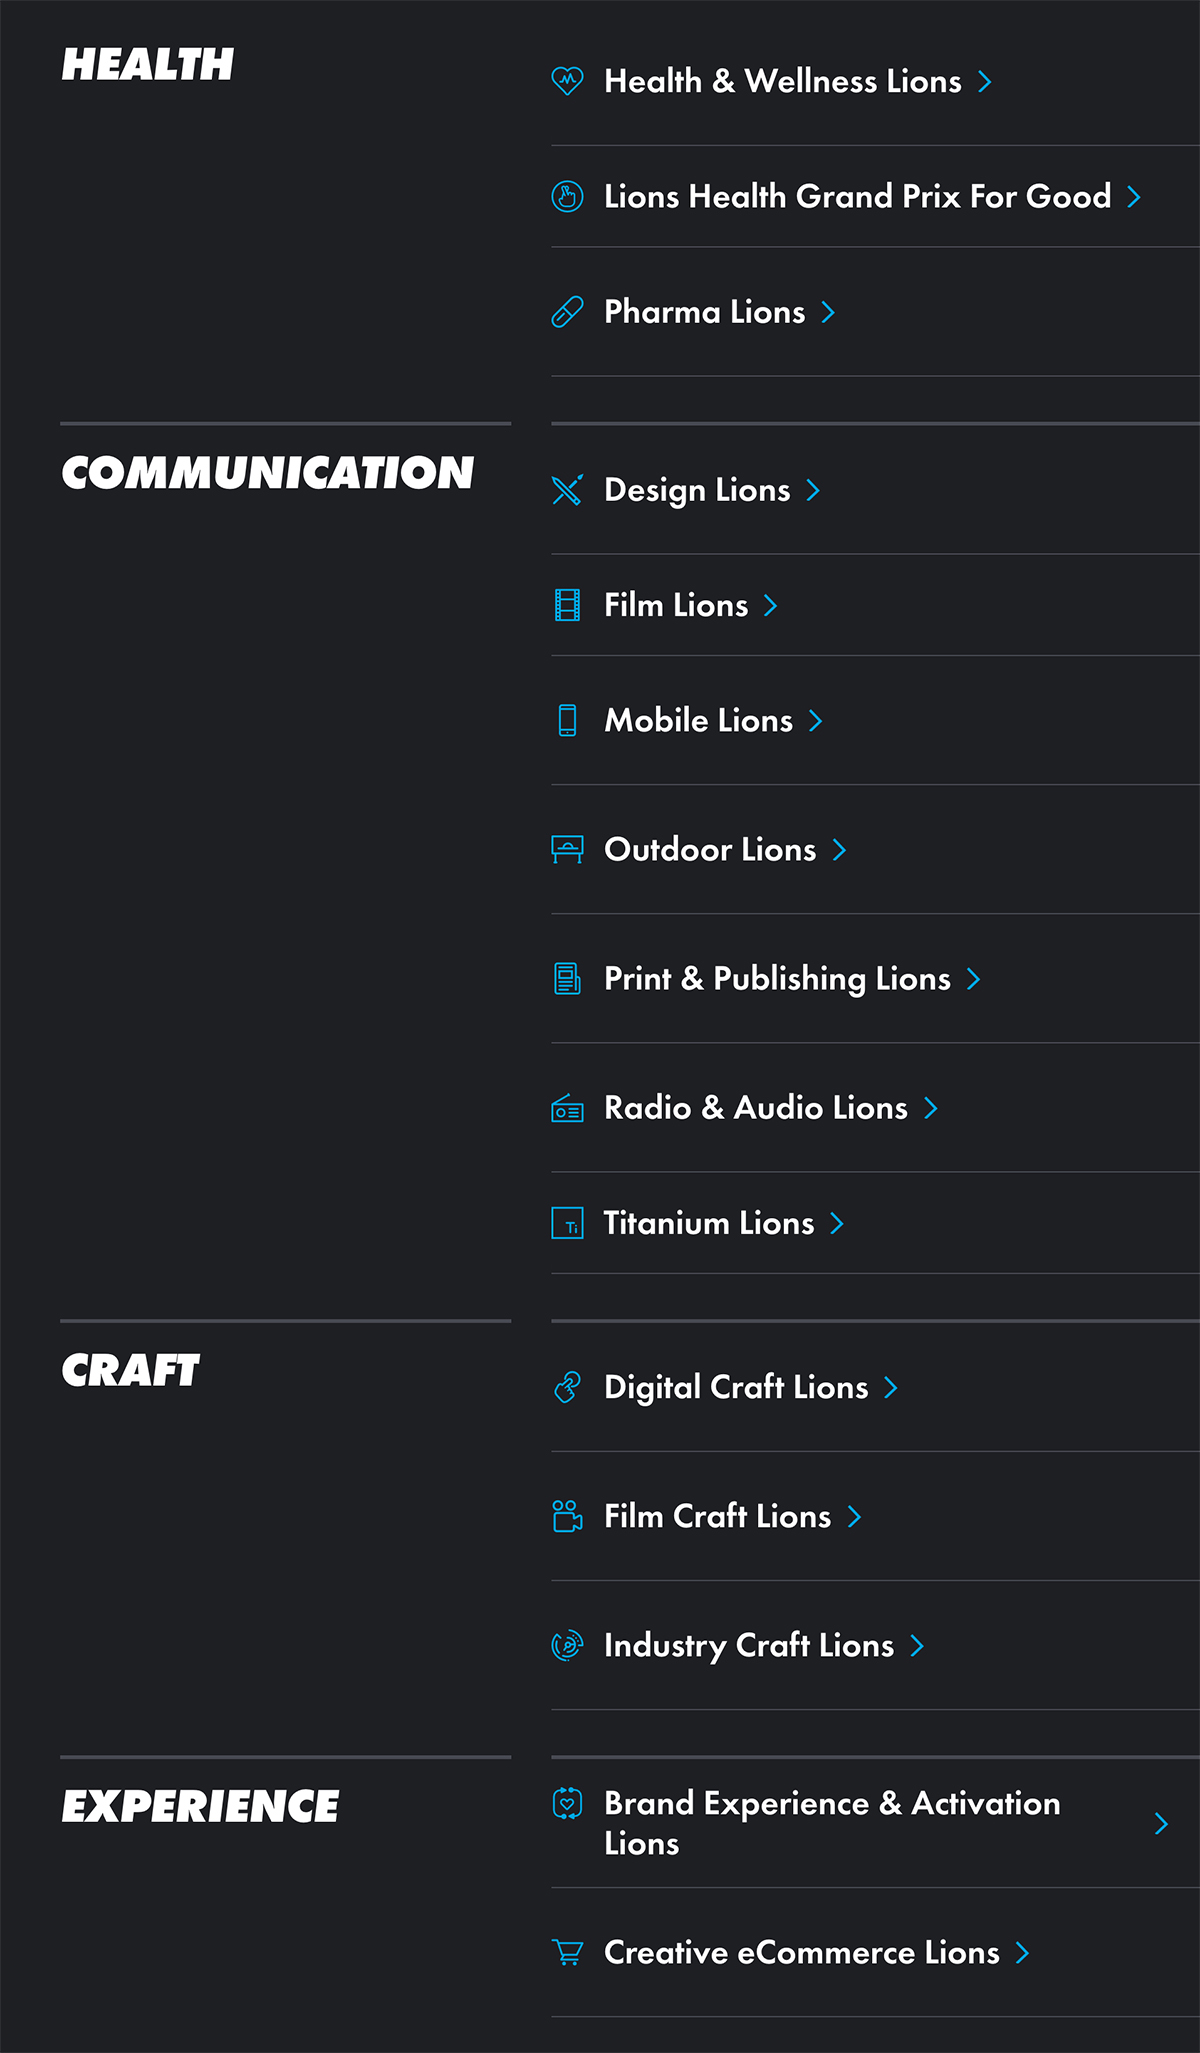 cannes-lions-2018-categories-sub-categories-1